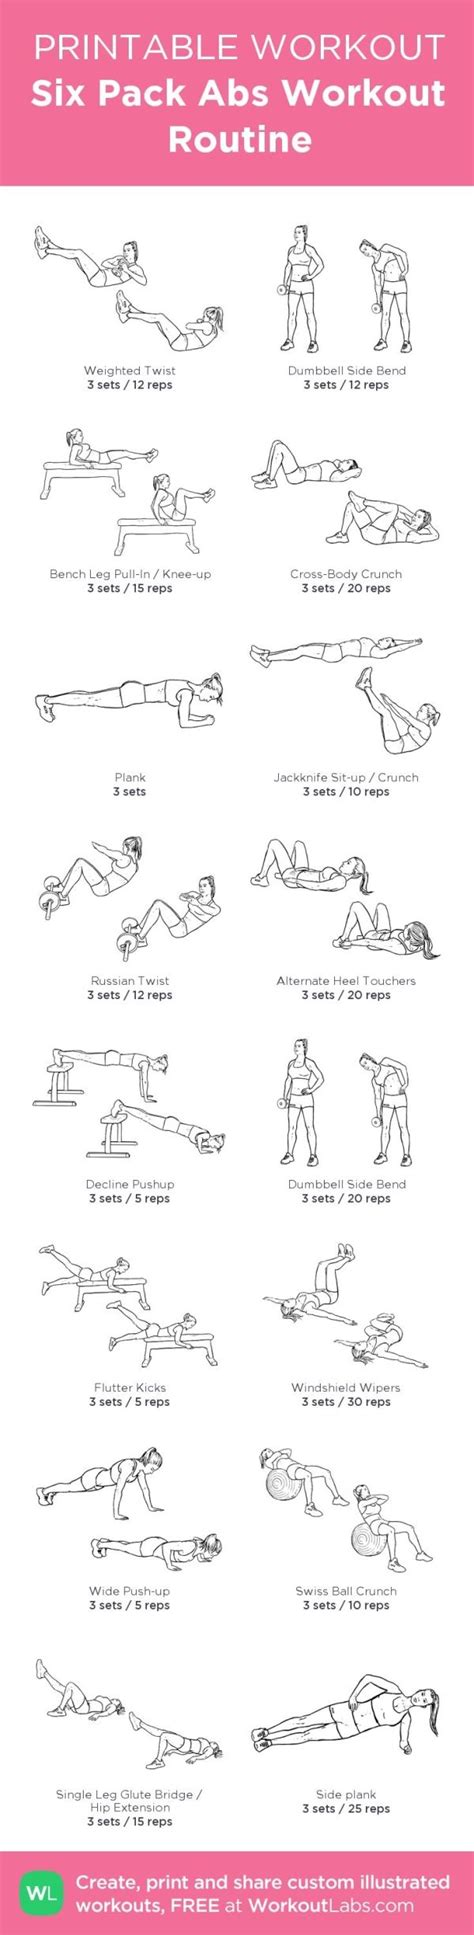 best 25 women s workout plans ideas on pinterest sport pictures printable workout plans for women daily quotes